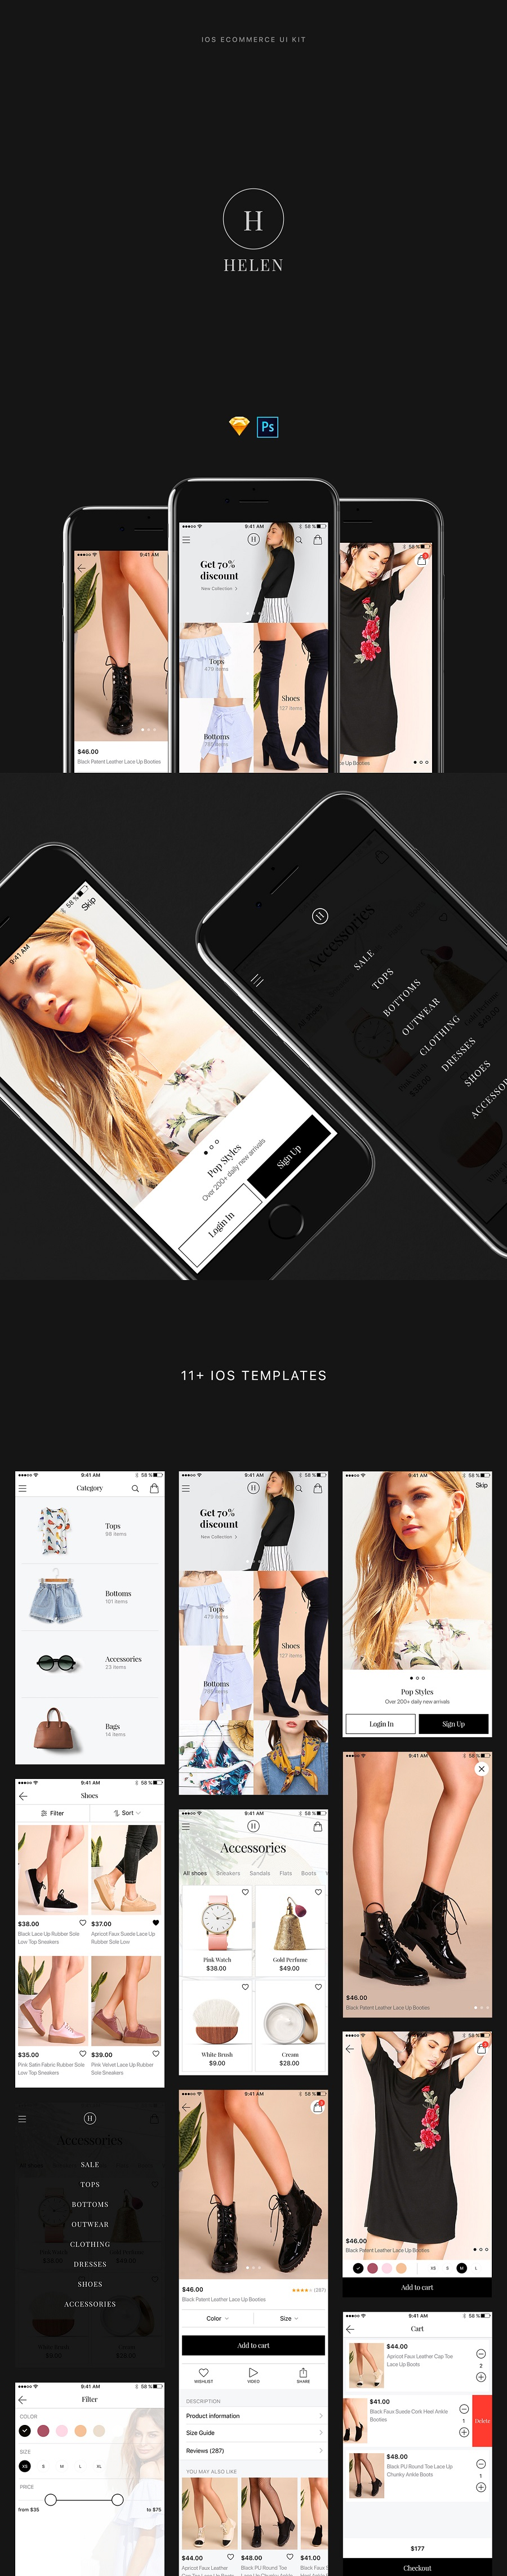 Helen Free iOS Ecommerce UI Kit